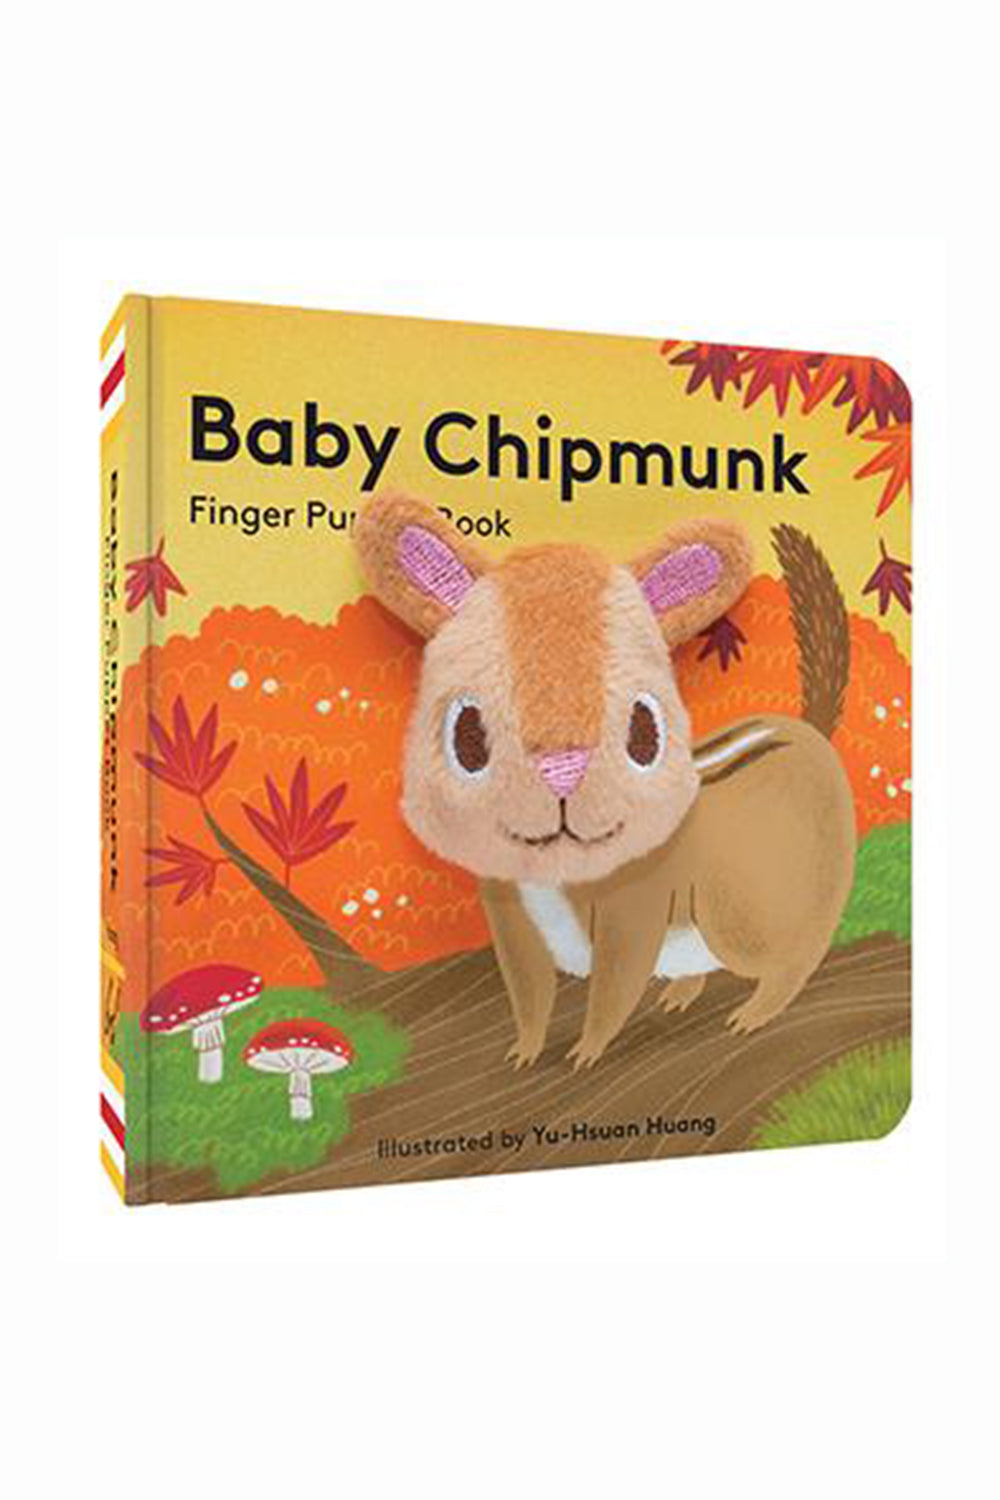 Finger Puppet Book - Baby Chipmunk